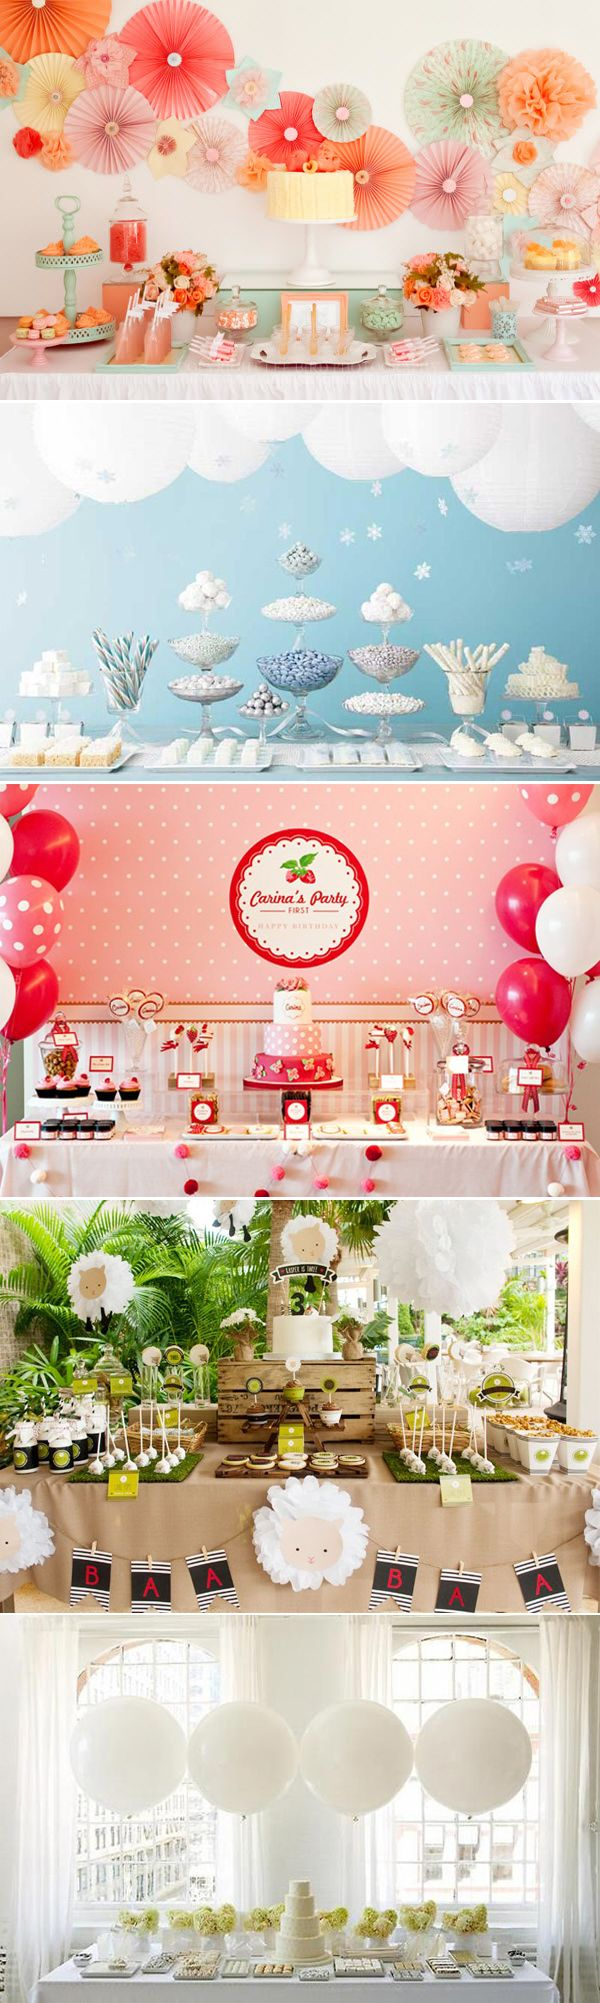 137 best Dessert Tables images on Pinterest Dessert tables